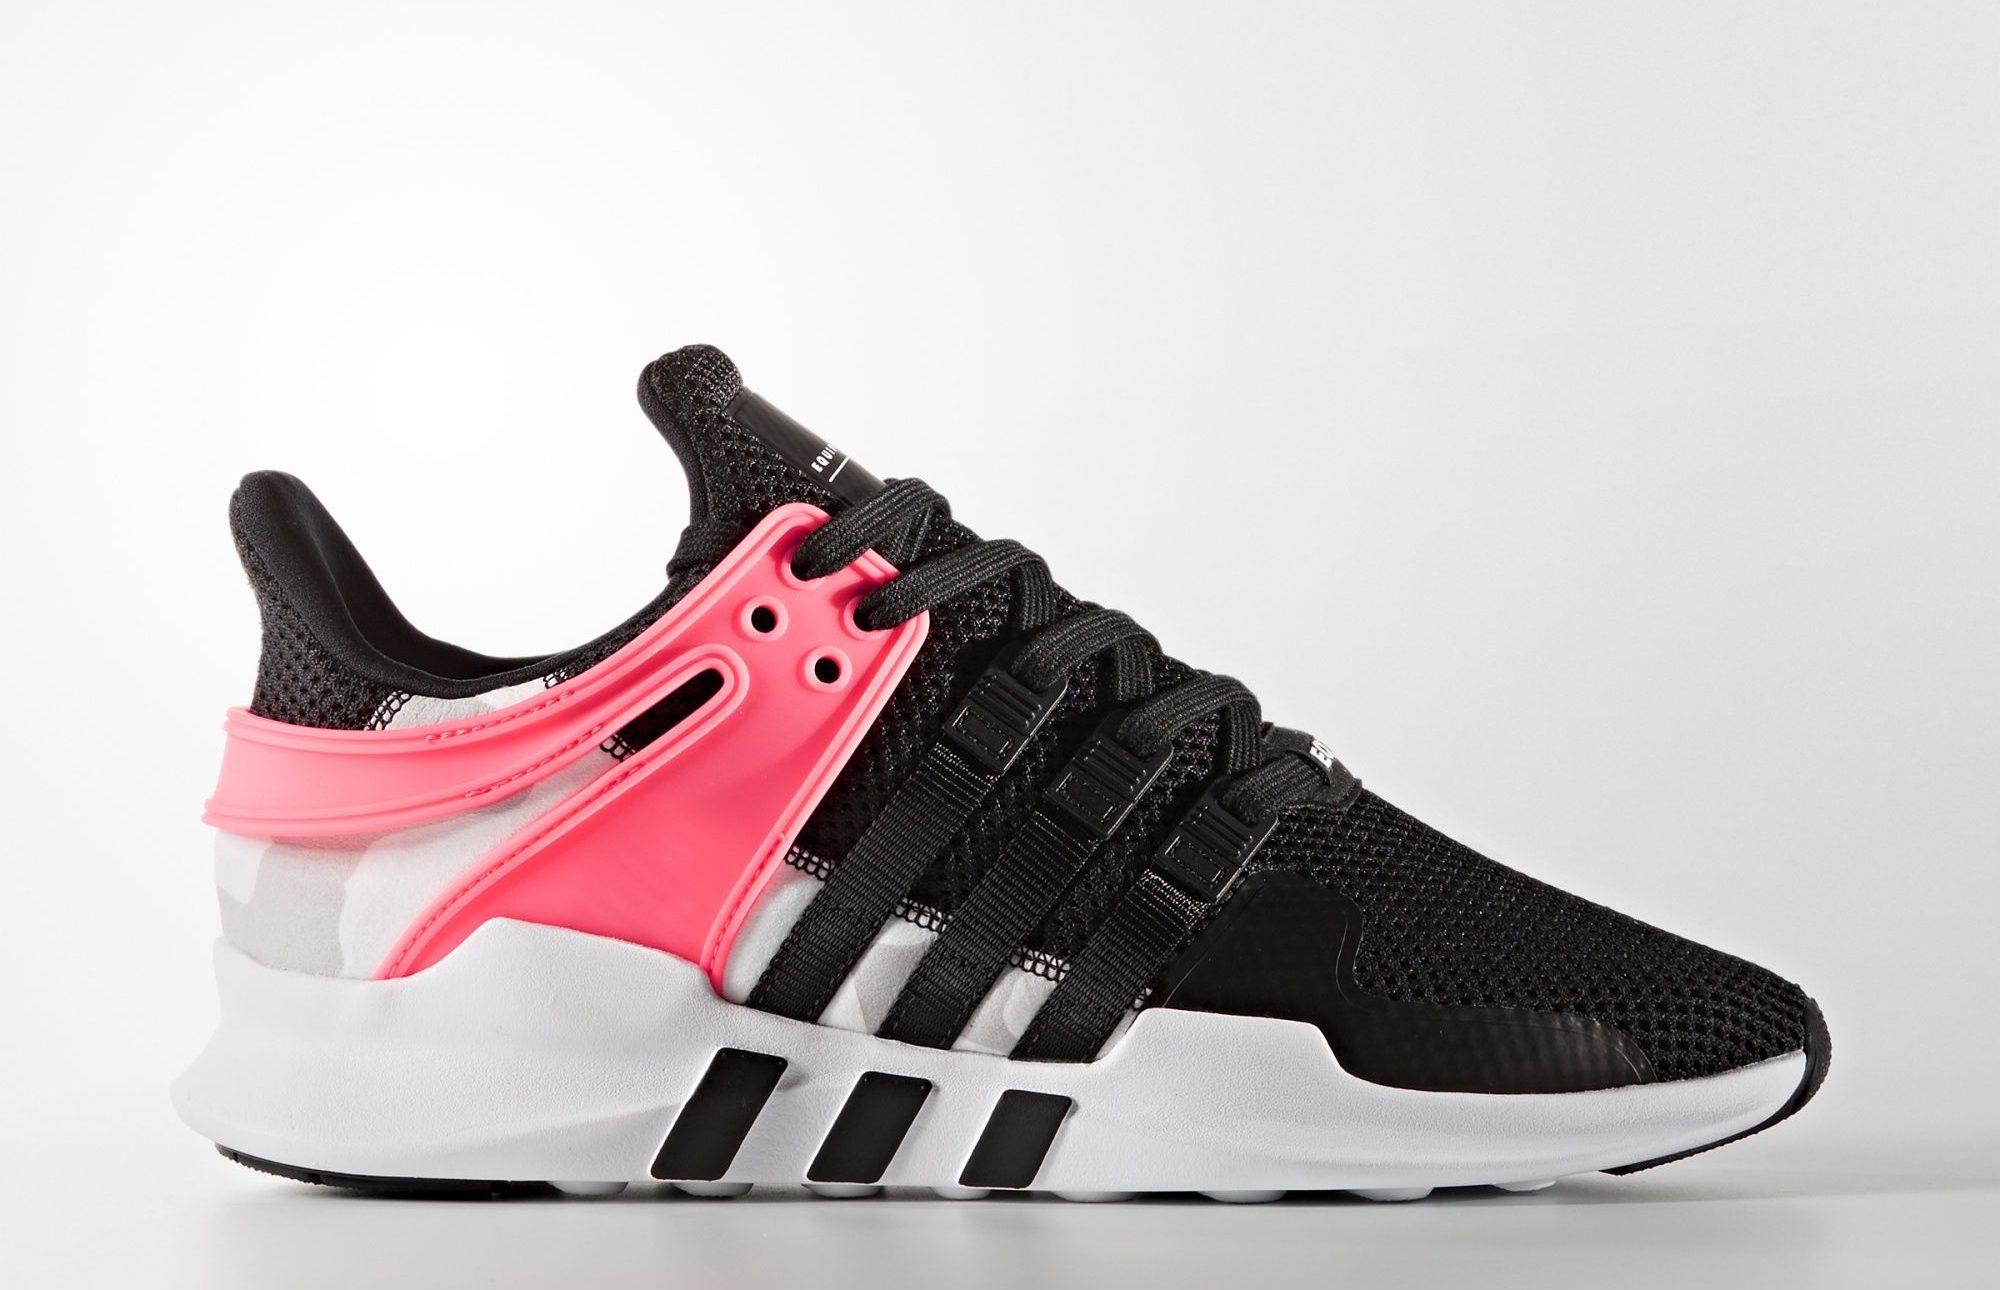 adidas EQT Support ADV BA7719 - Sneaker Releases